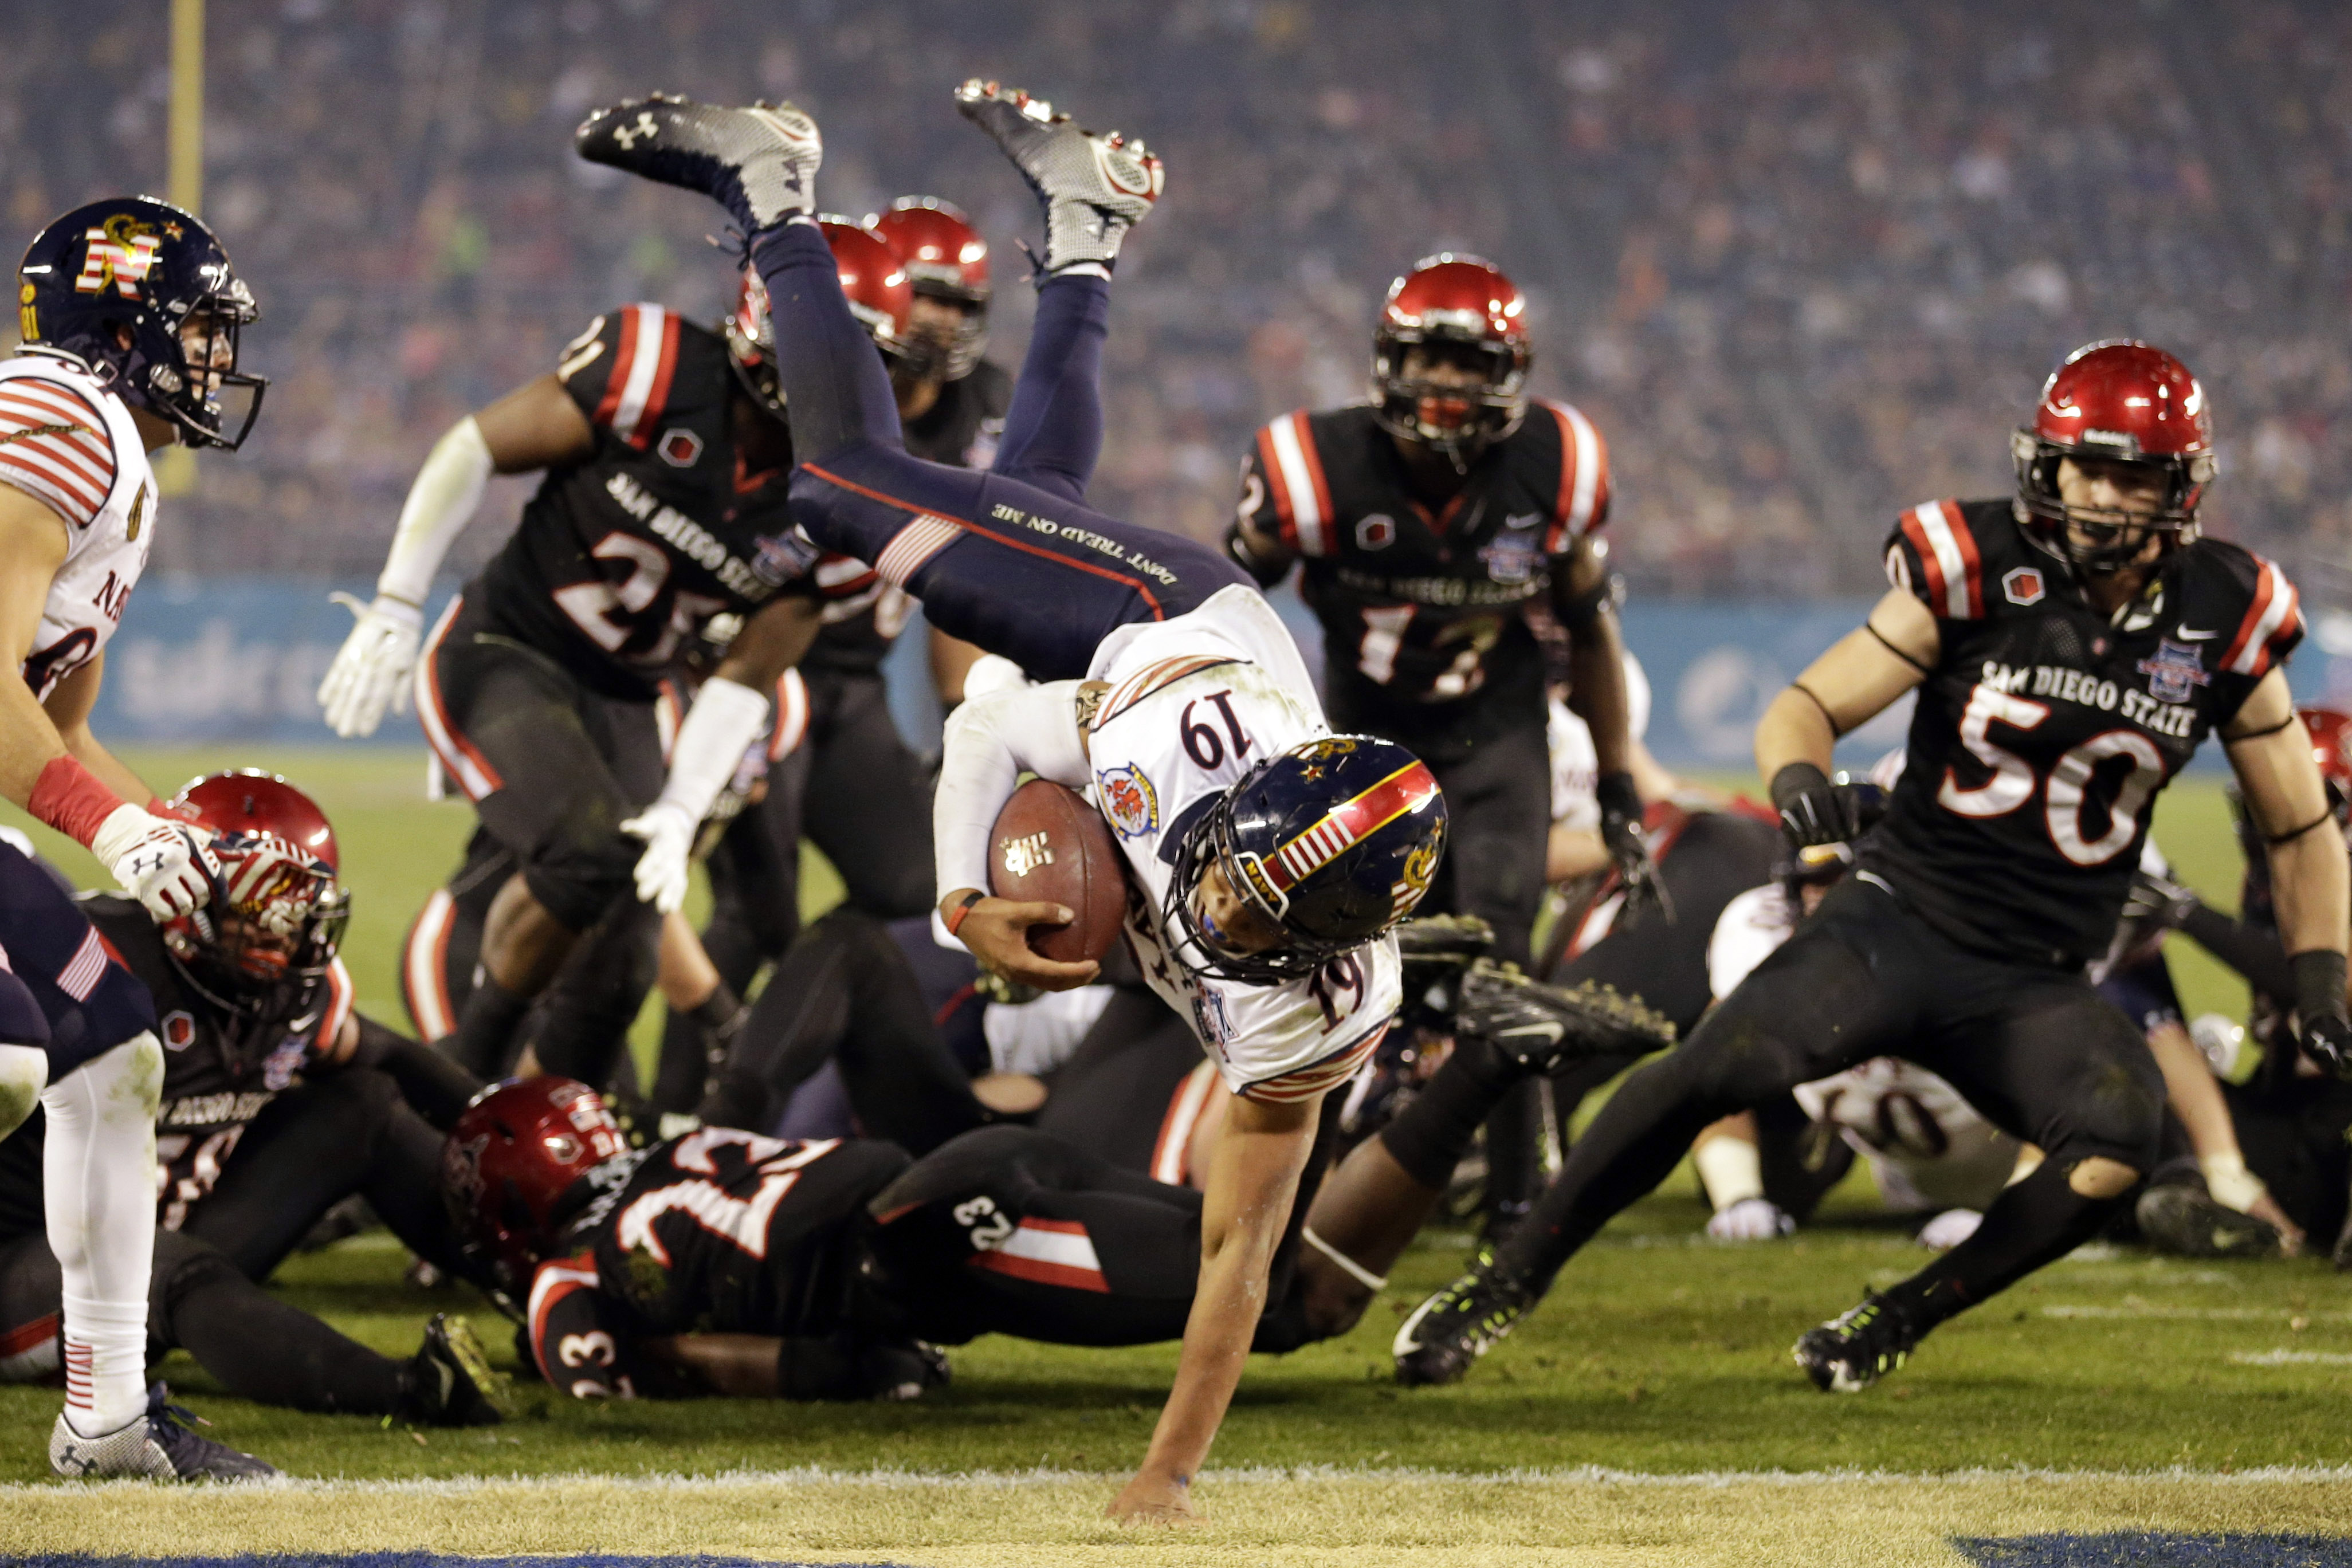 FILE - In this Dec. 23, 2014, file photo, Navy quarterback Keenan Reynolds (19) jumps into the end zone for a touchdown against San Diego State during the second half of the Poinsettia Bowl NCAA college football game, in San Diego. There are 41 bowl games